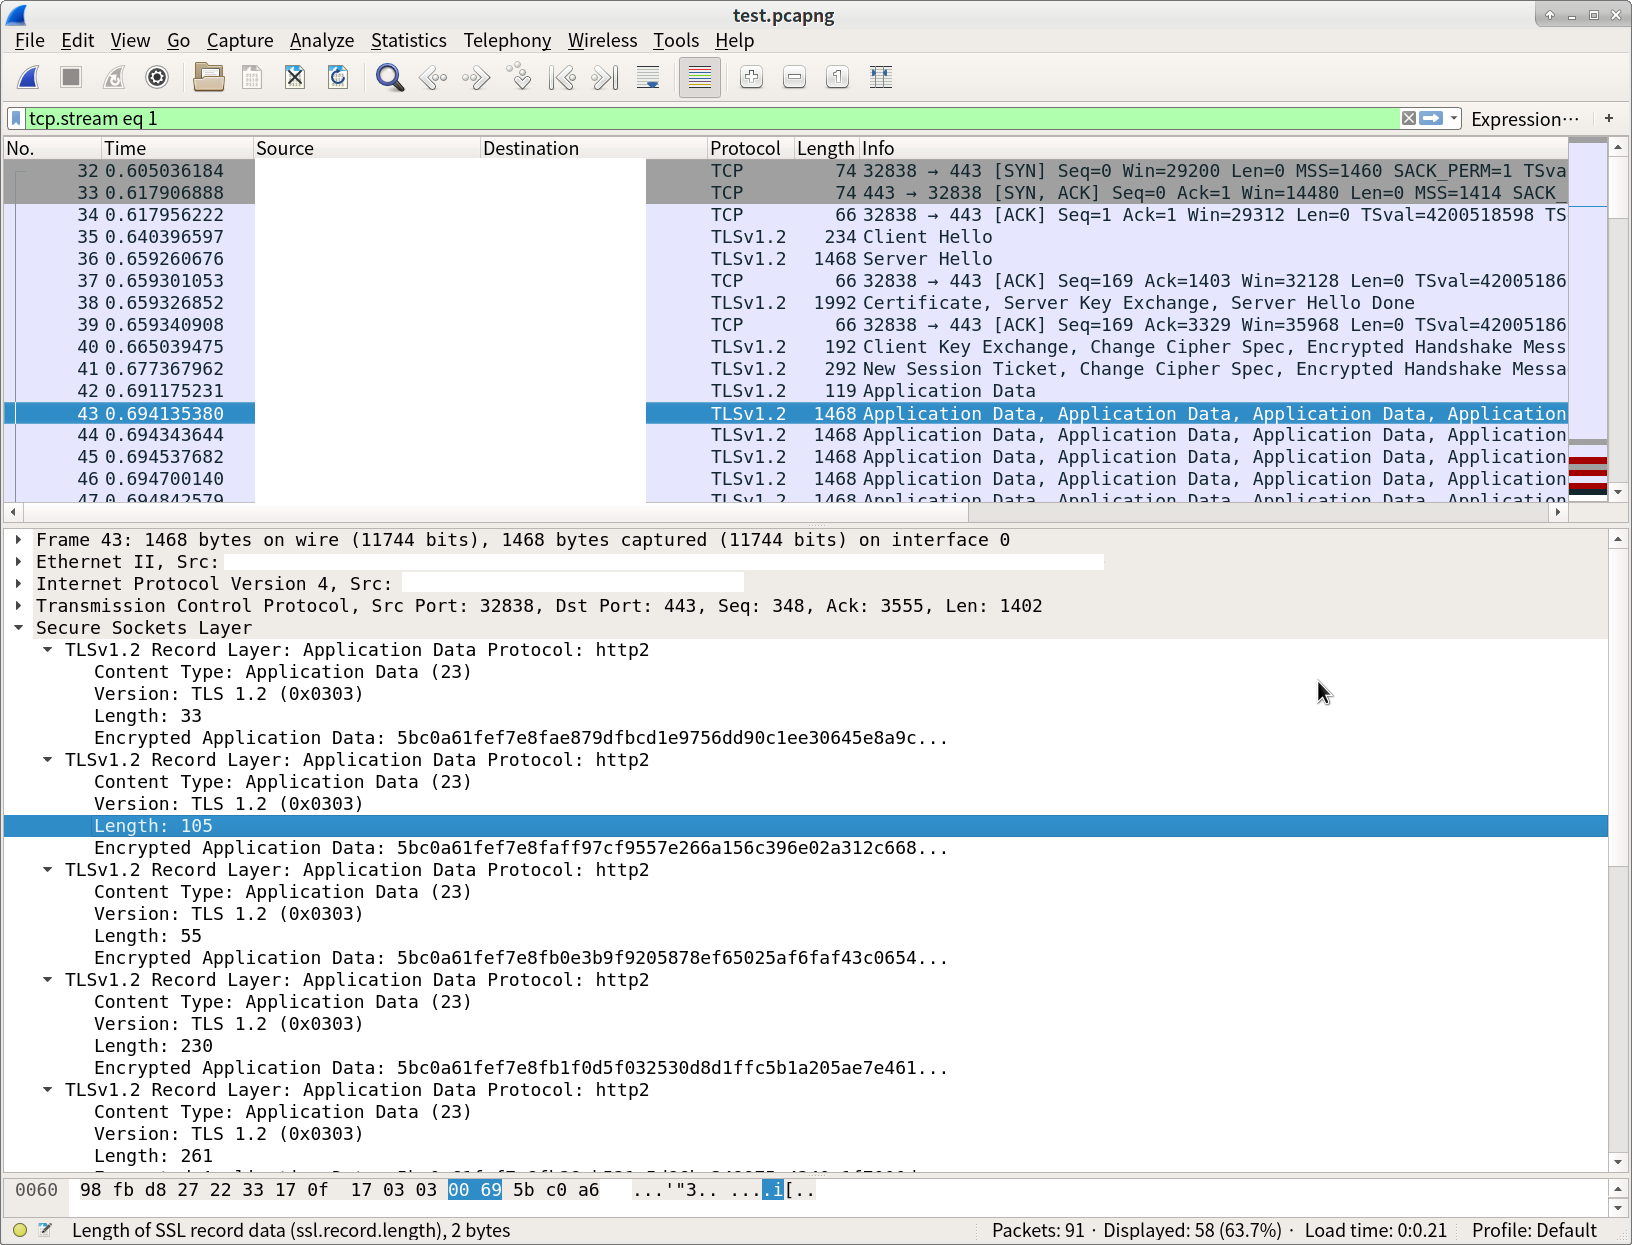 wireshark-http2.png